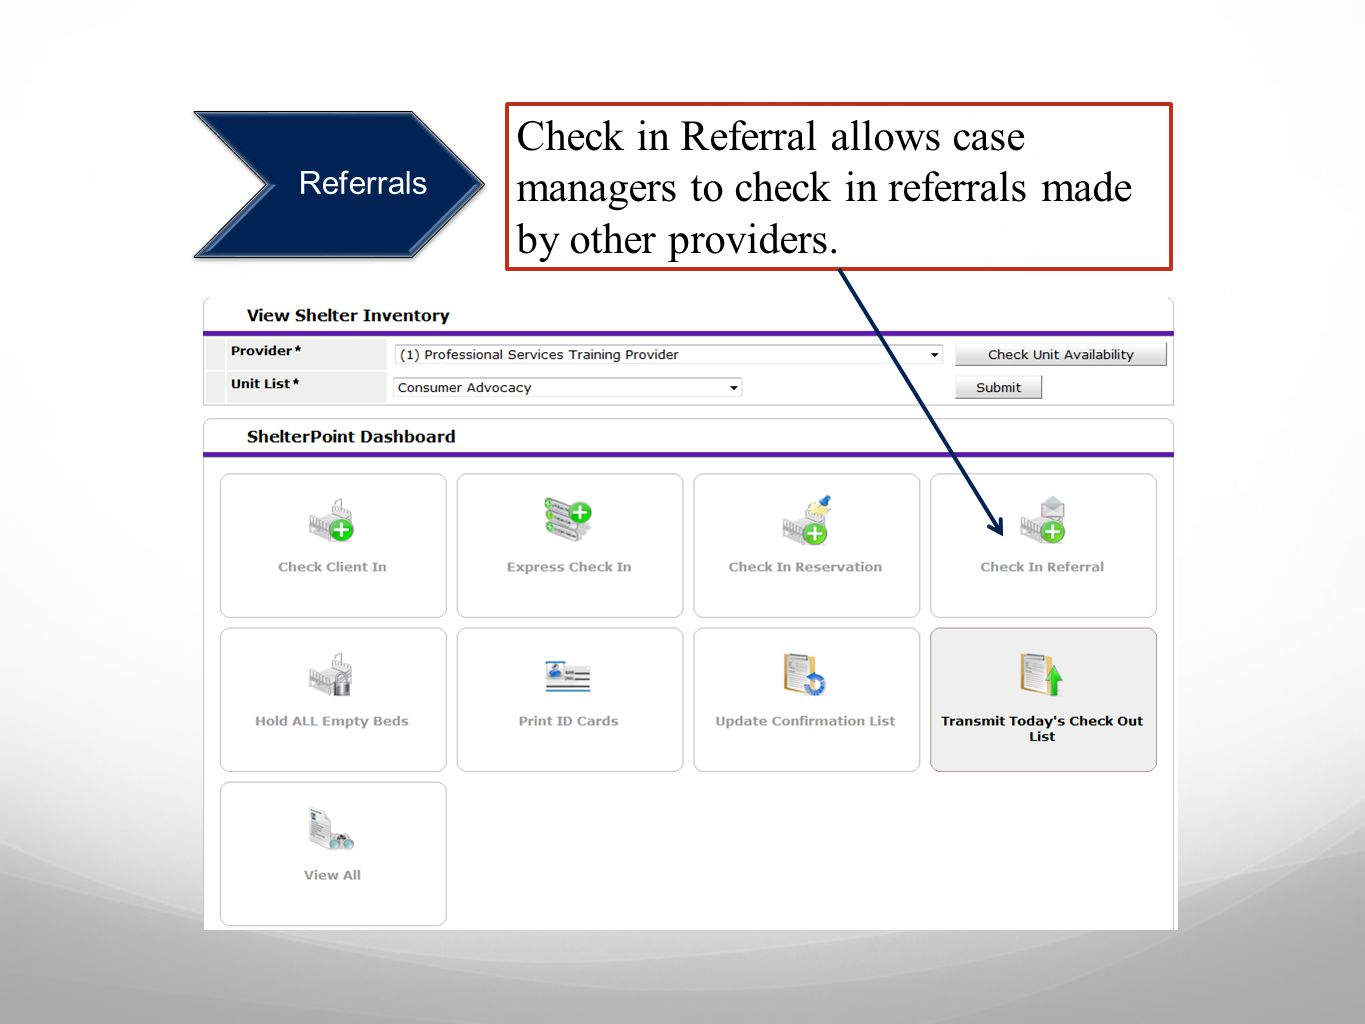 Referrals Check in Referral allows case managers to check in referrals made by other providers.